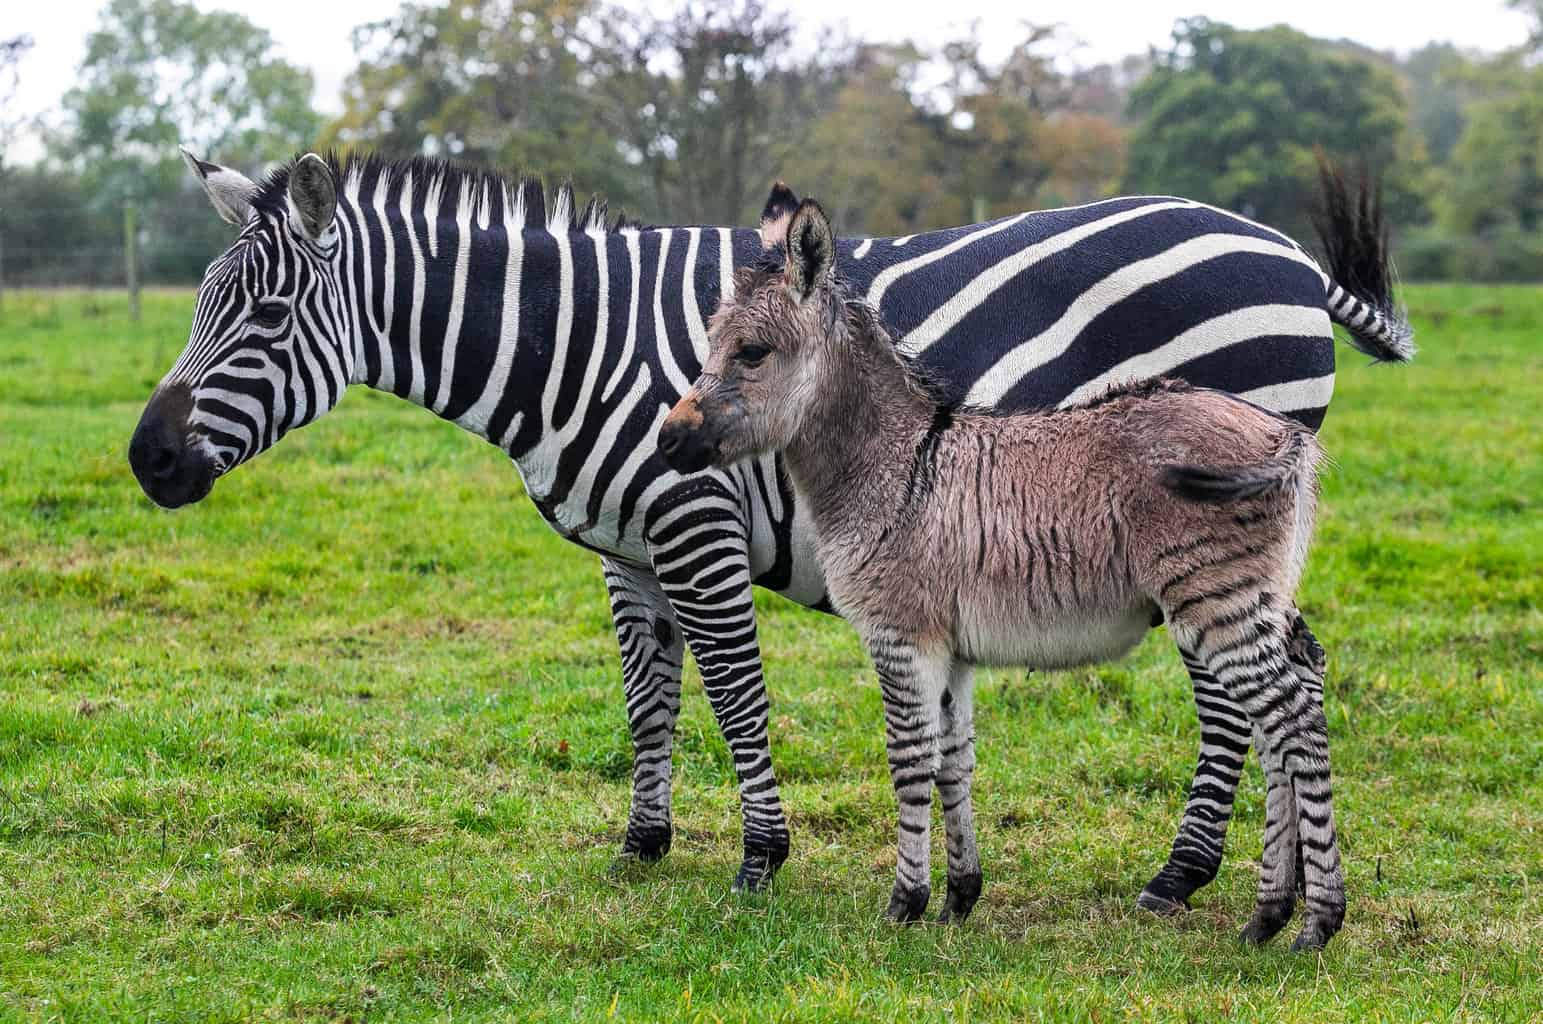 Zonkey born in Somerset without owner knowing her zebra was pregnant